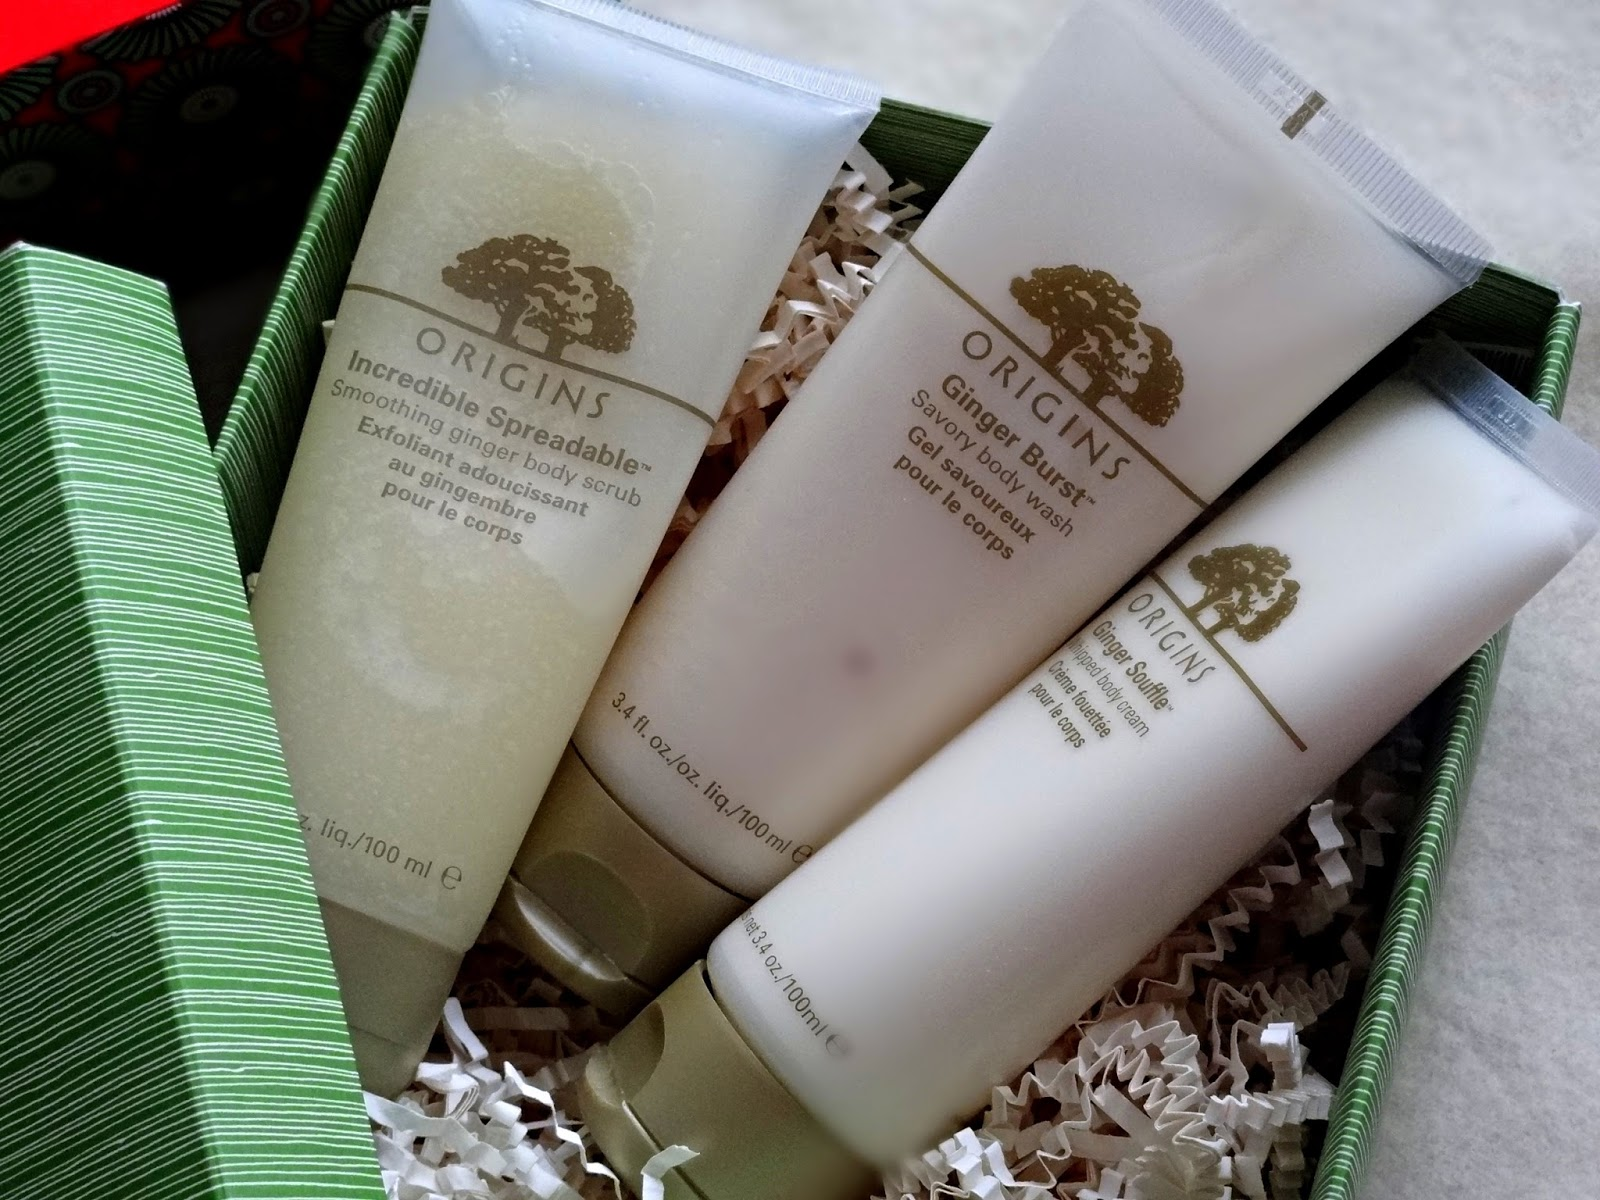 Origins Ginger Treasures Bath and Body Set Review, Photos